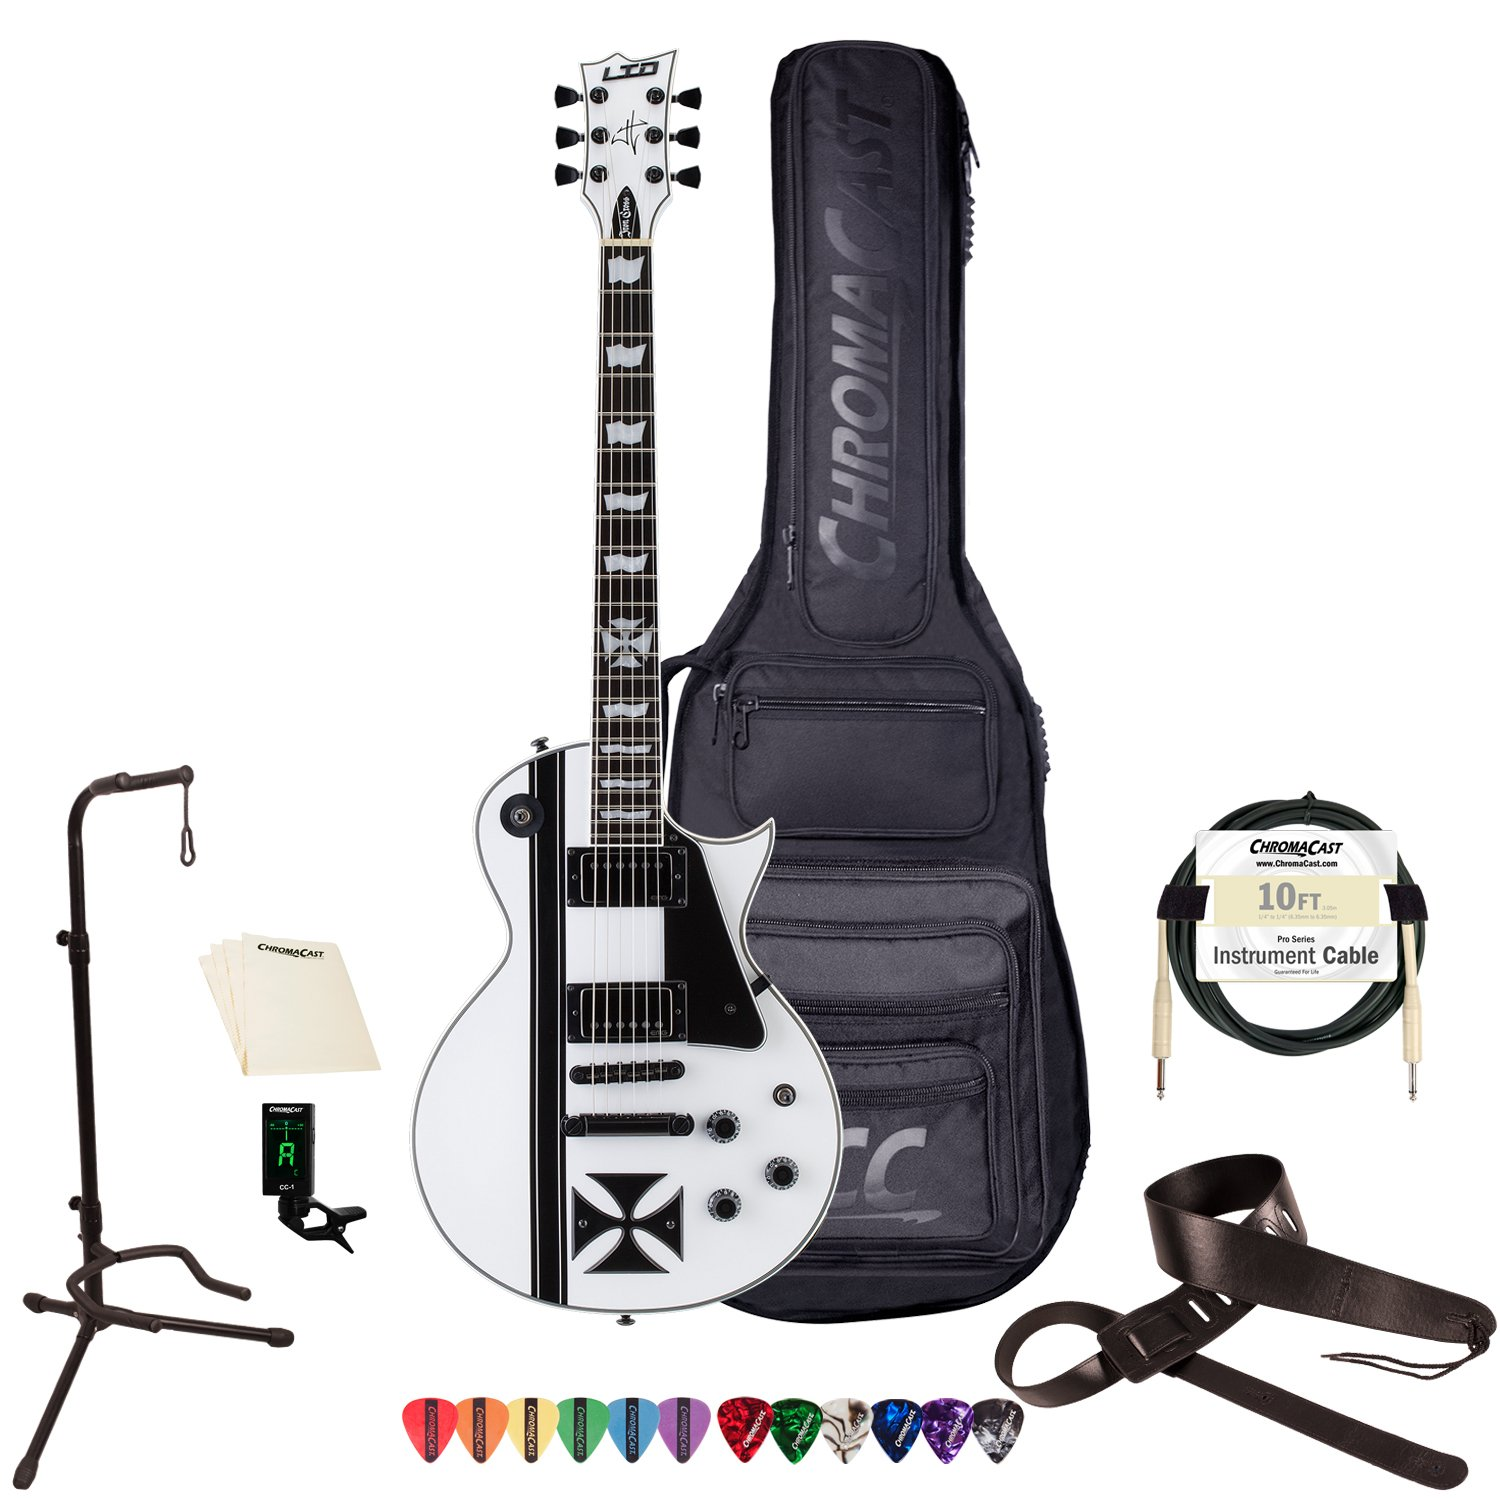 Cheap ESP LTD James Hetfield Signature Series Iron Cross Electric Guitar with Gig Bag & Accessories Snow White Black Friday & Cyber Monday 2019